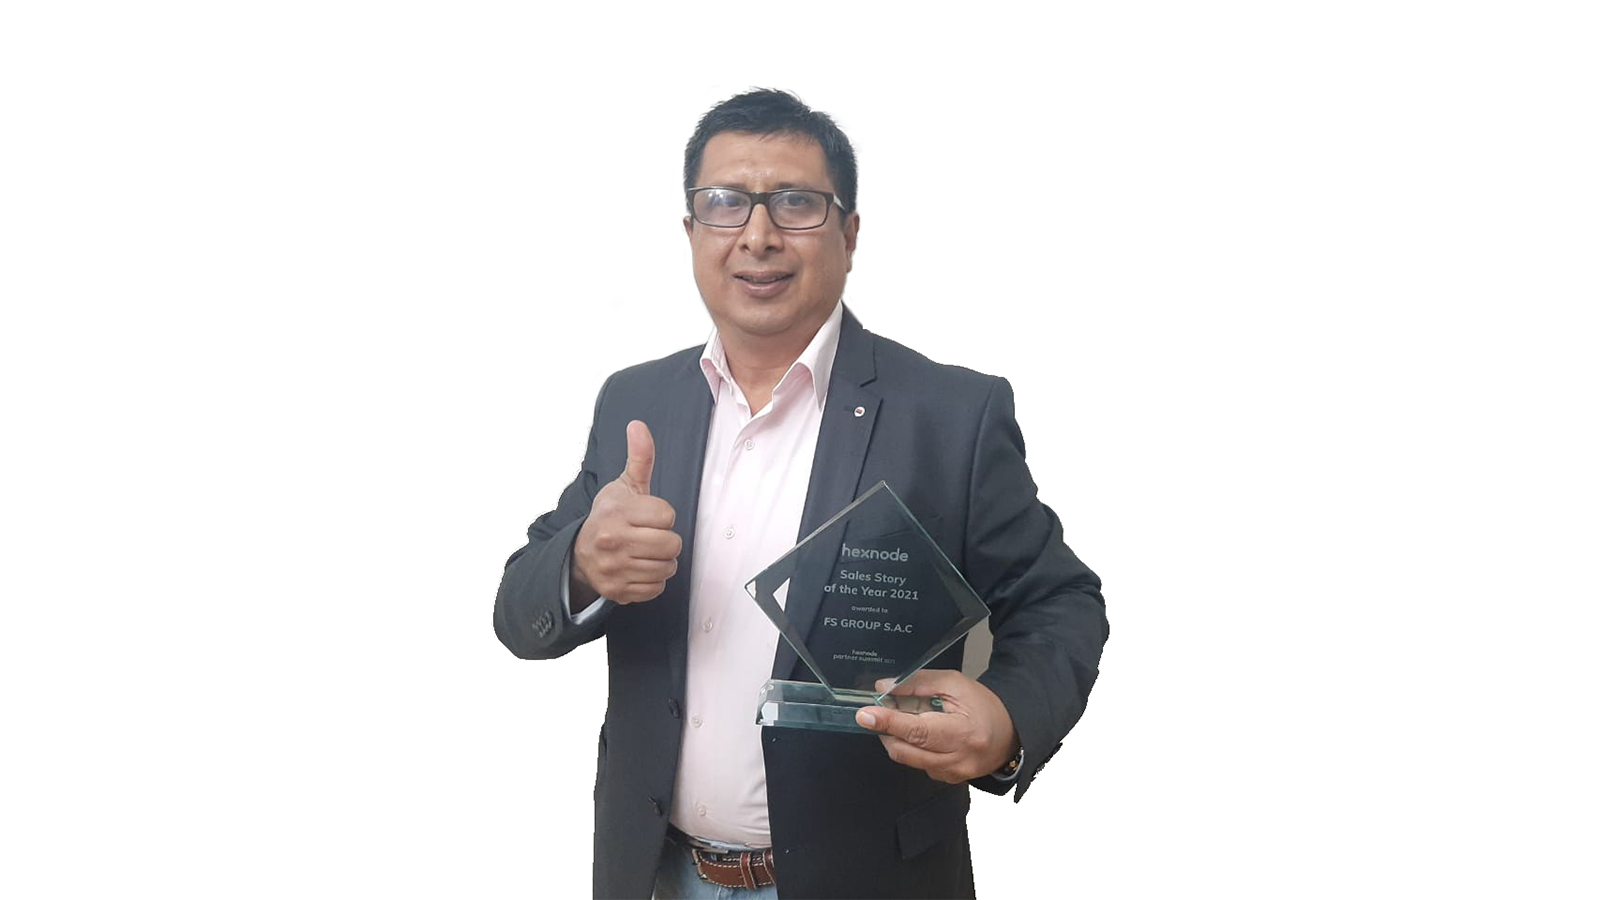 Sales story of the year award